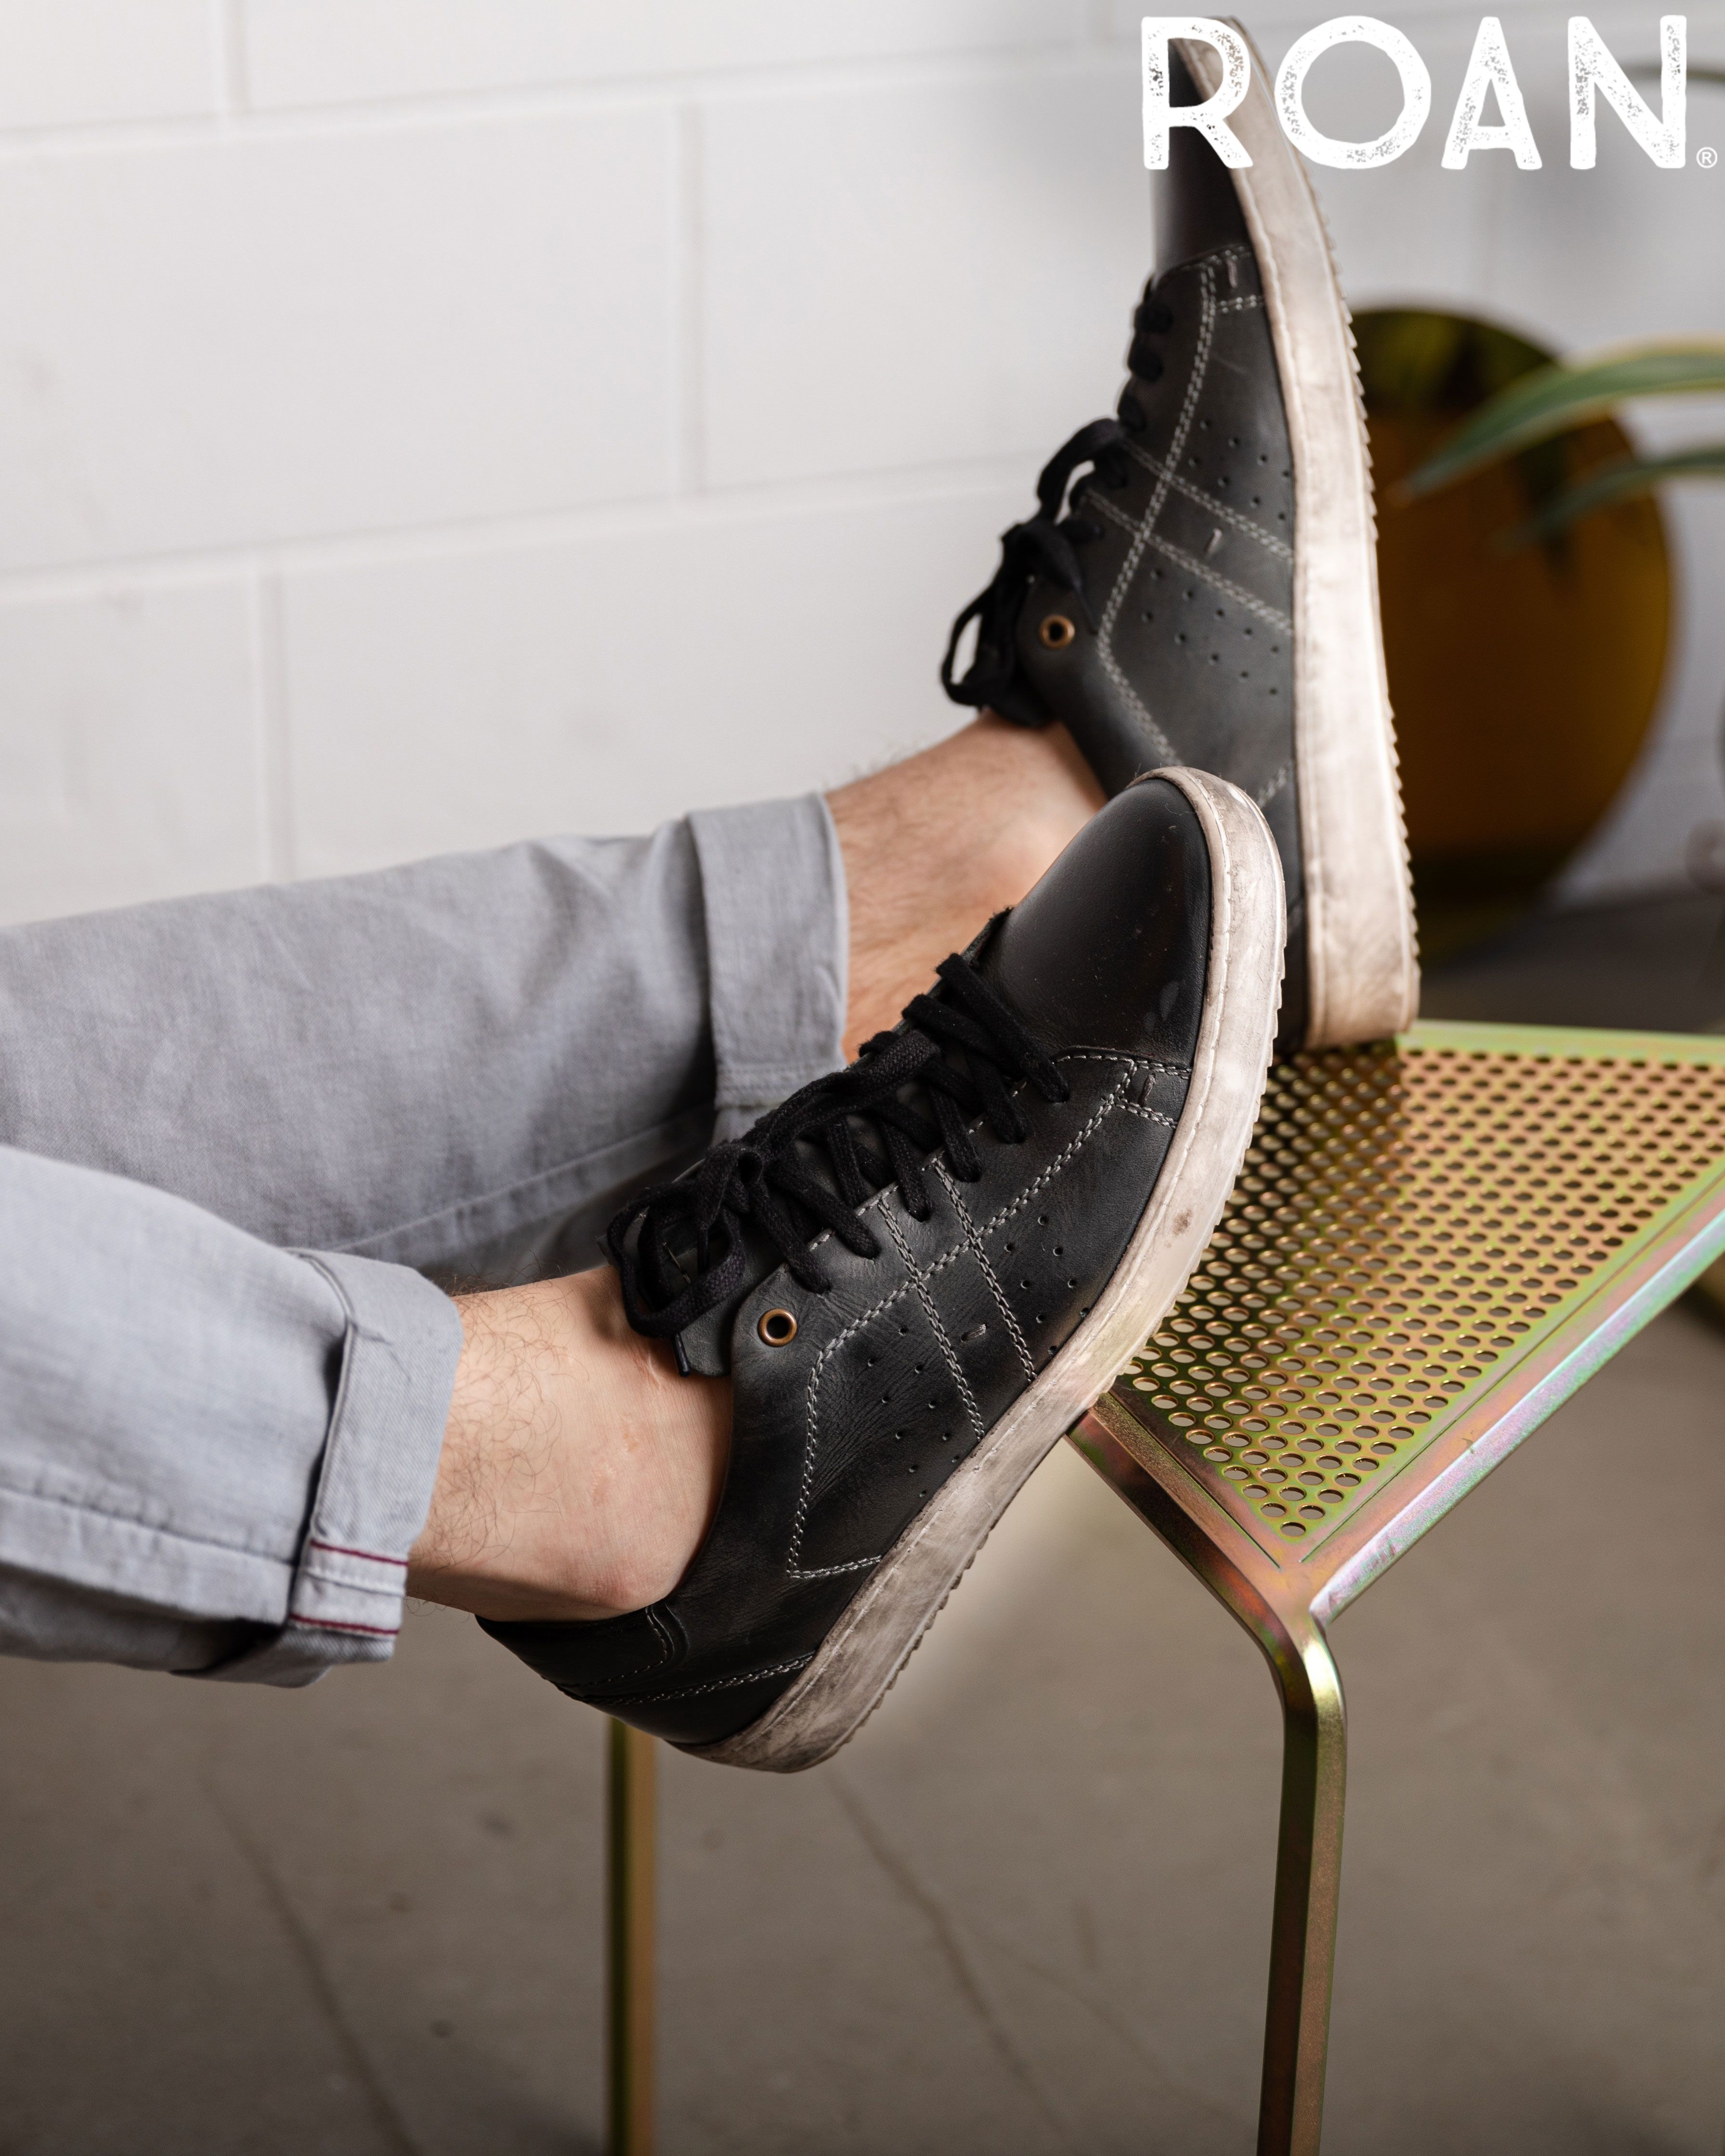 Henson Black Leather Sneakers Black Laces Leather Sneakers [ 4480 x 3584 Pixel ]